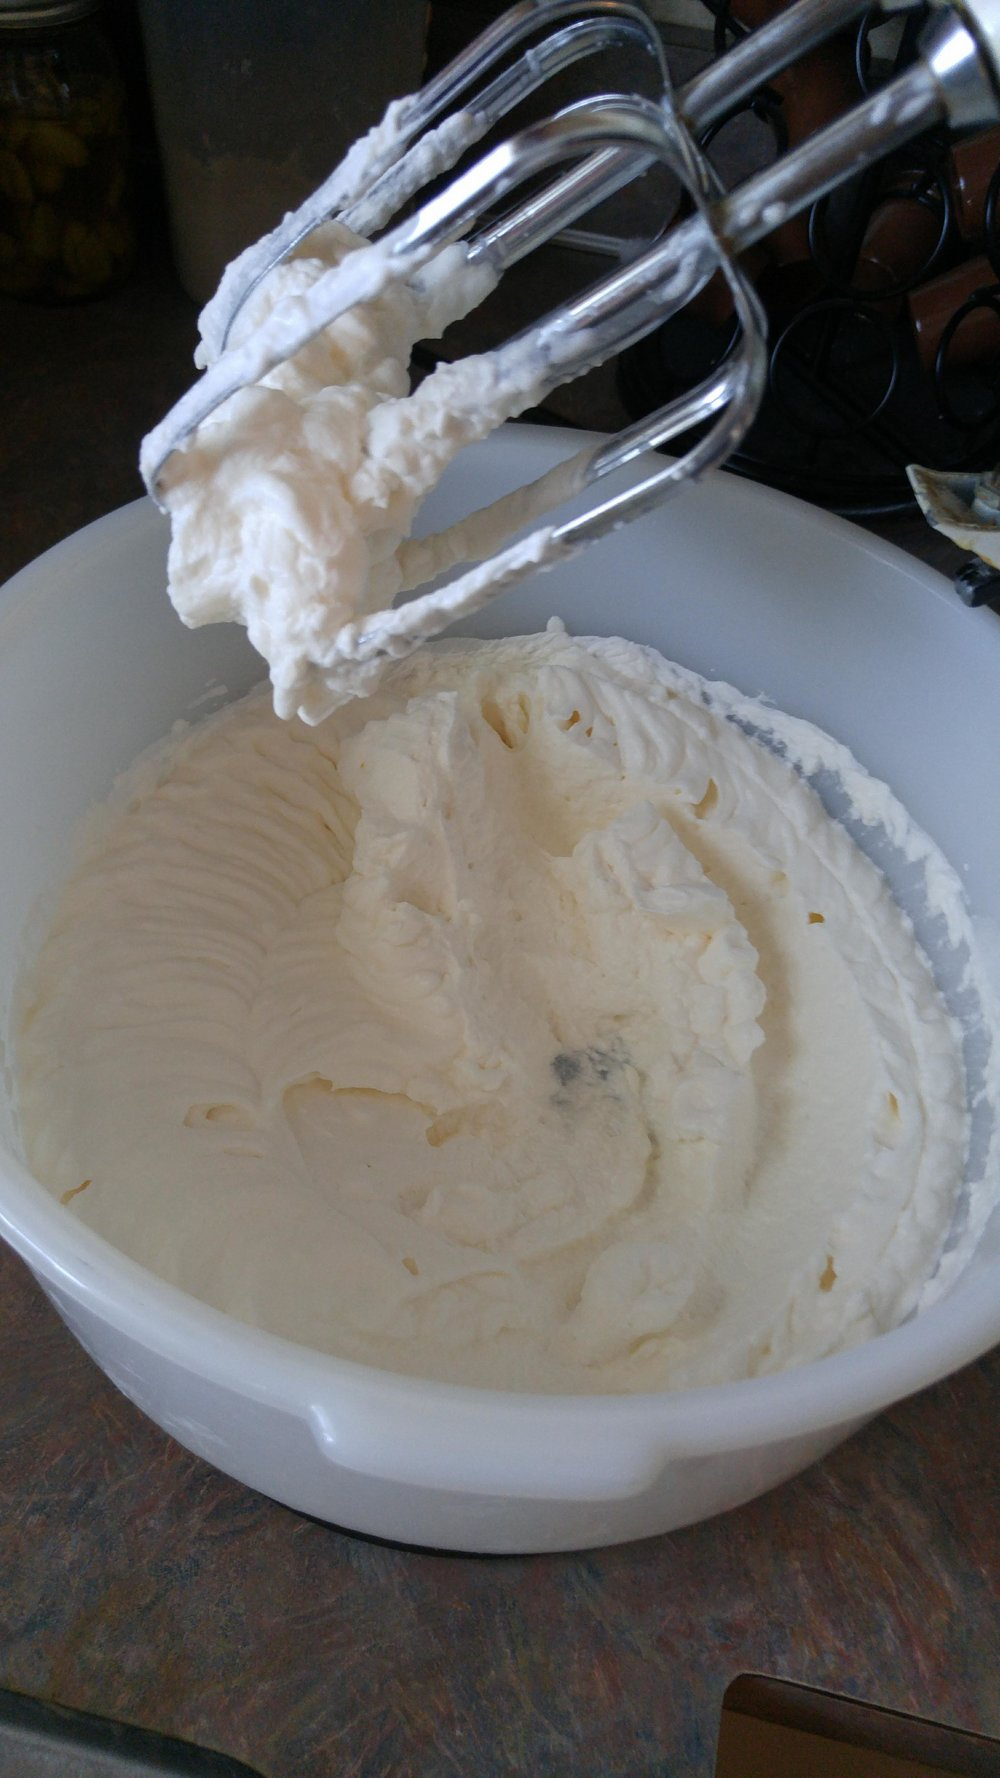 whipped cream done 2.jpg